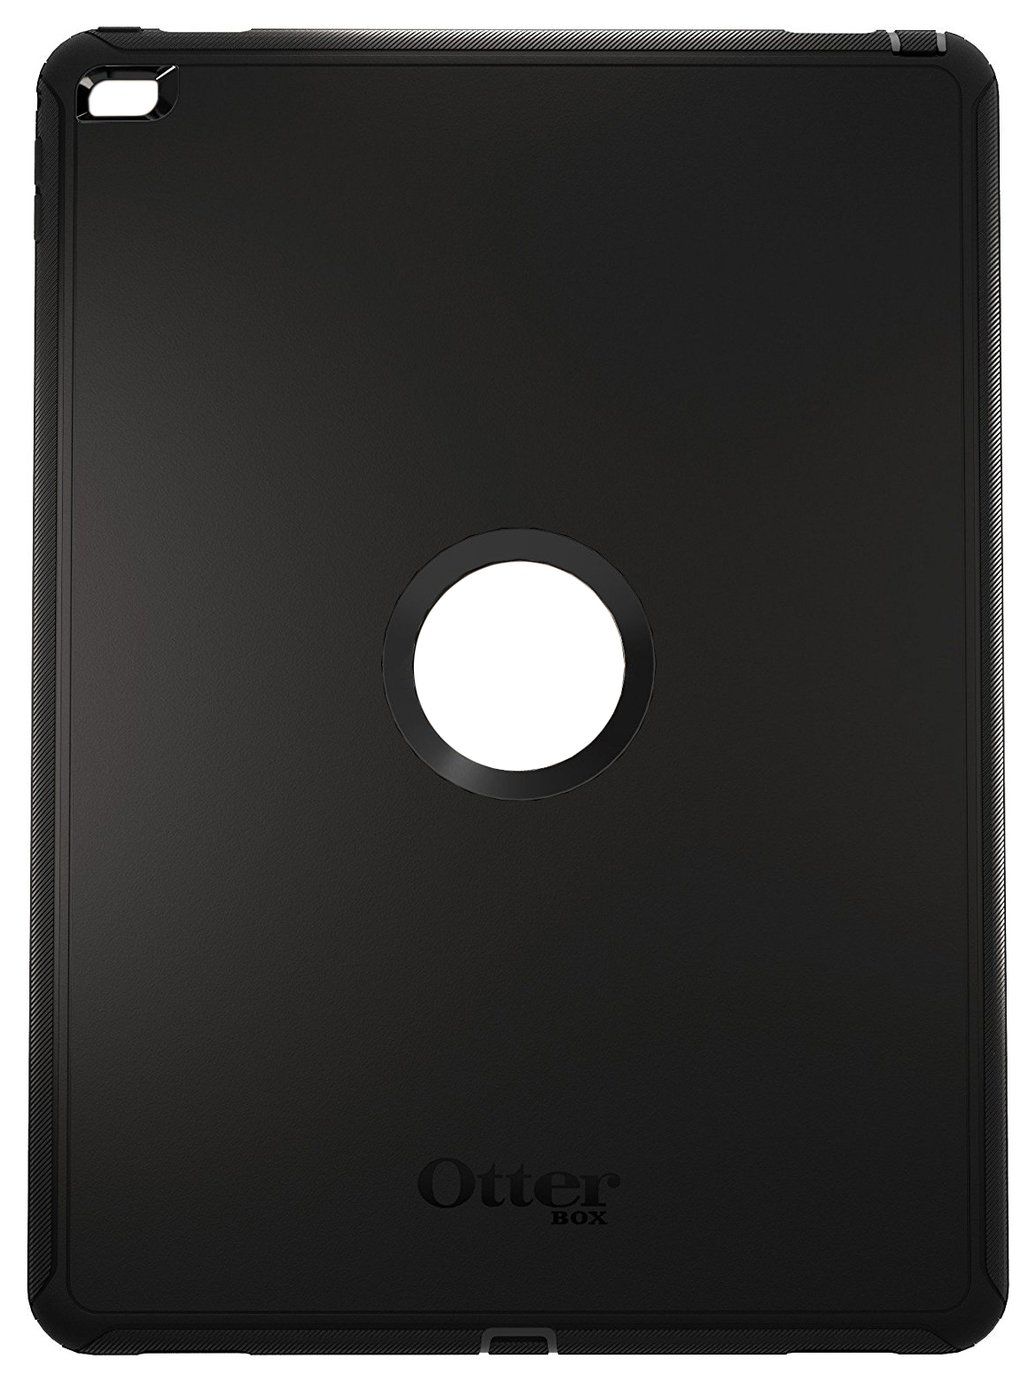 Compare retail prices of Otterbox Defender Apple iPad Pro 12.9 Inch Case to get the best deal online